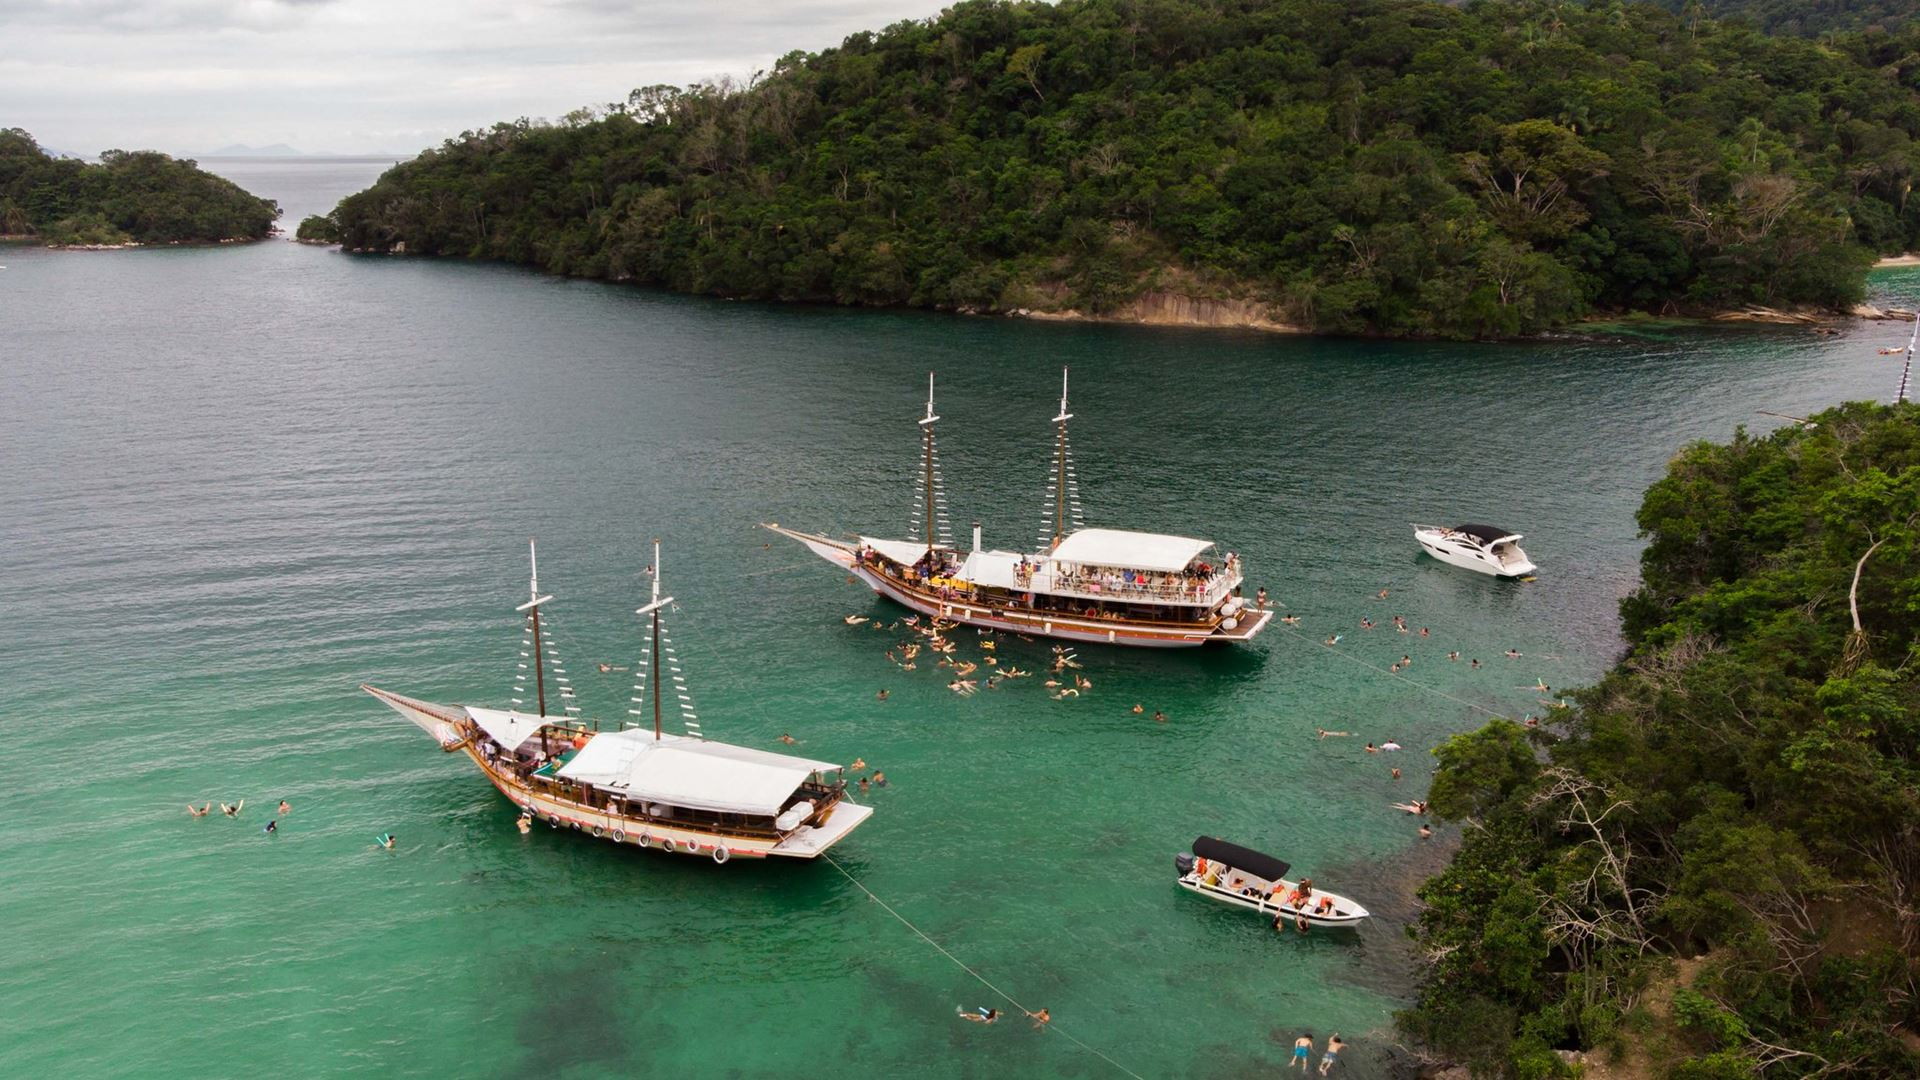 Angra Dos Reis Day Trip With Boat Tour